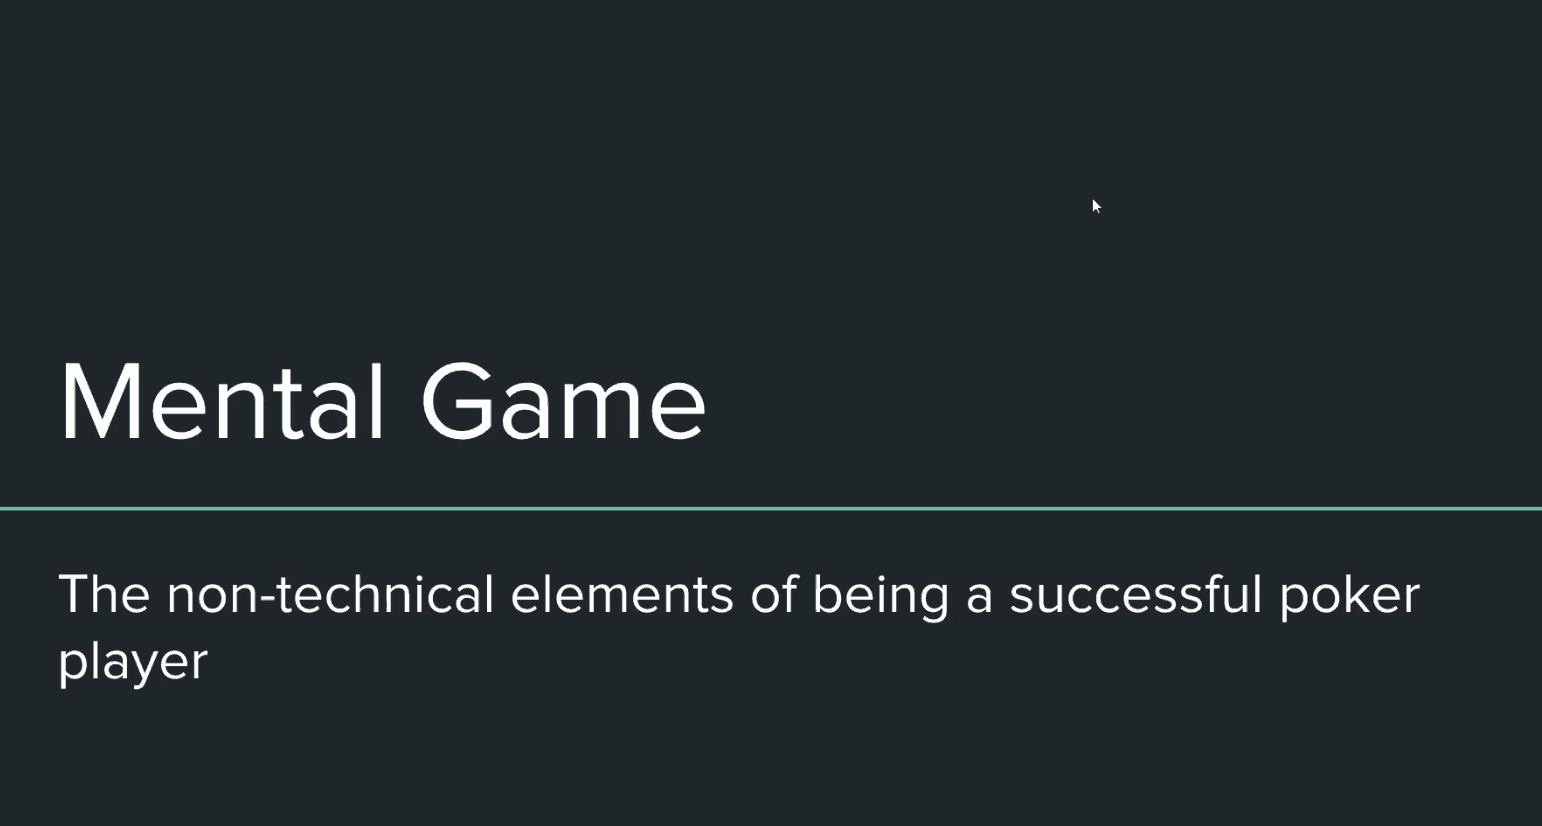 Introduction to Mental Game